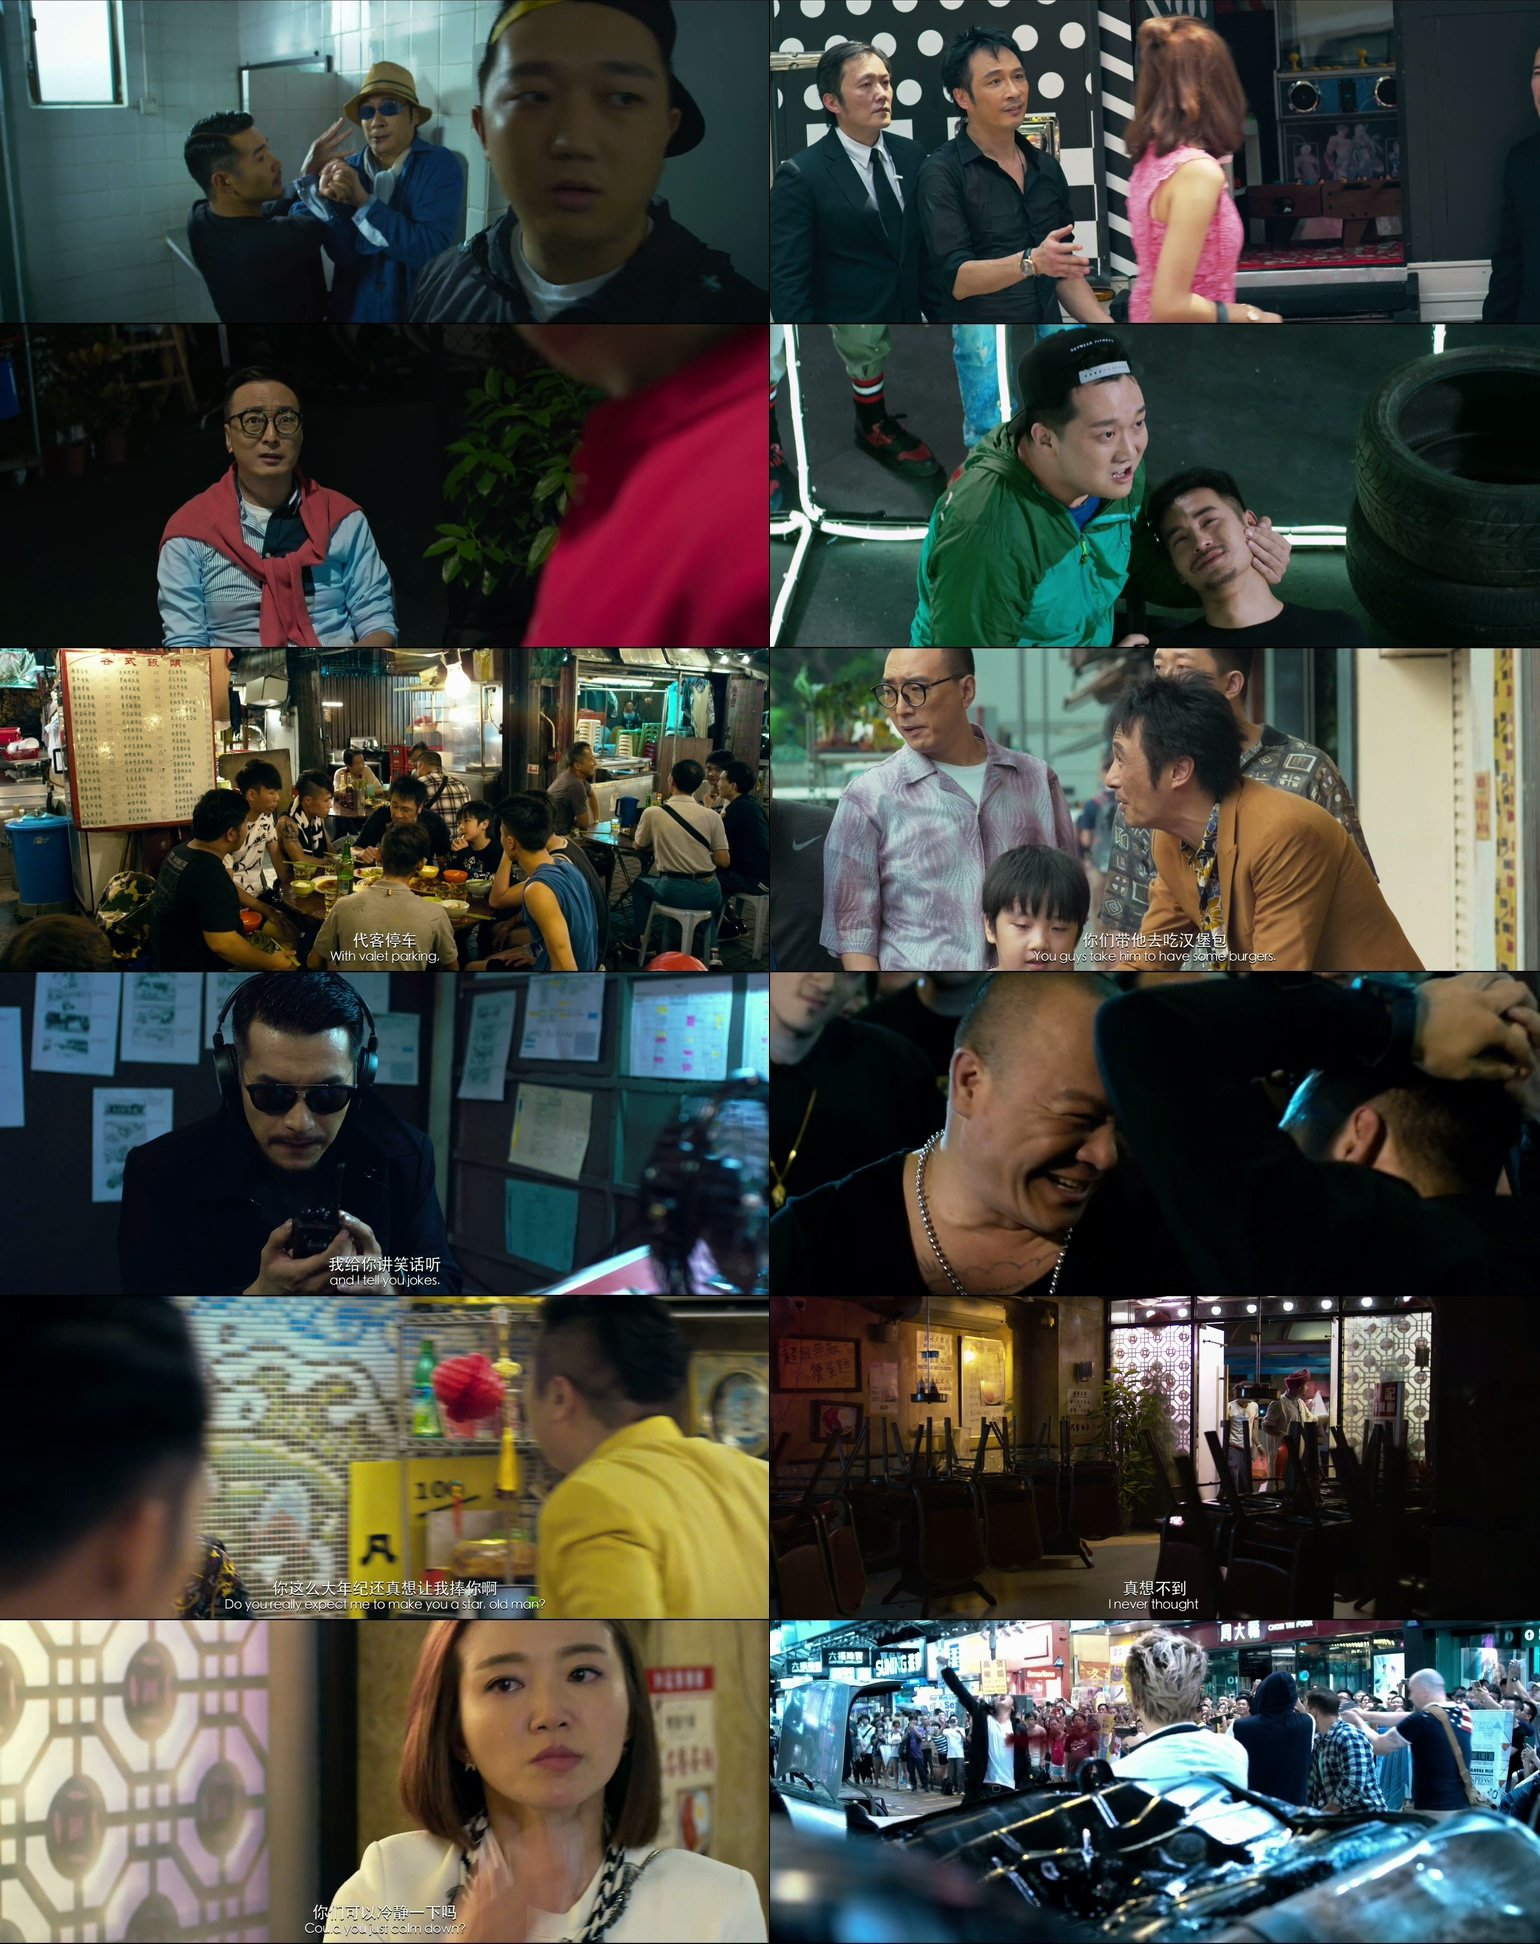 Change.of.Gangster.2019.1080p.WEB-DL.H264.AAC2.0-FEWAT